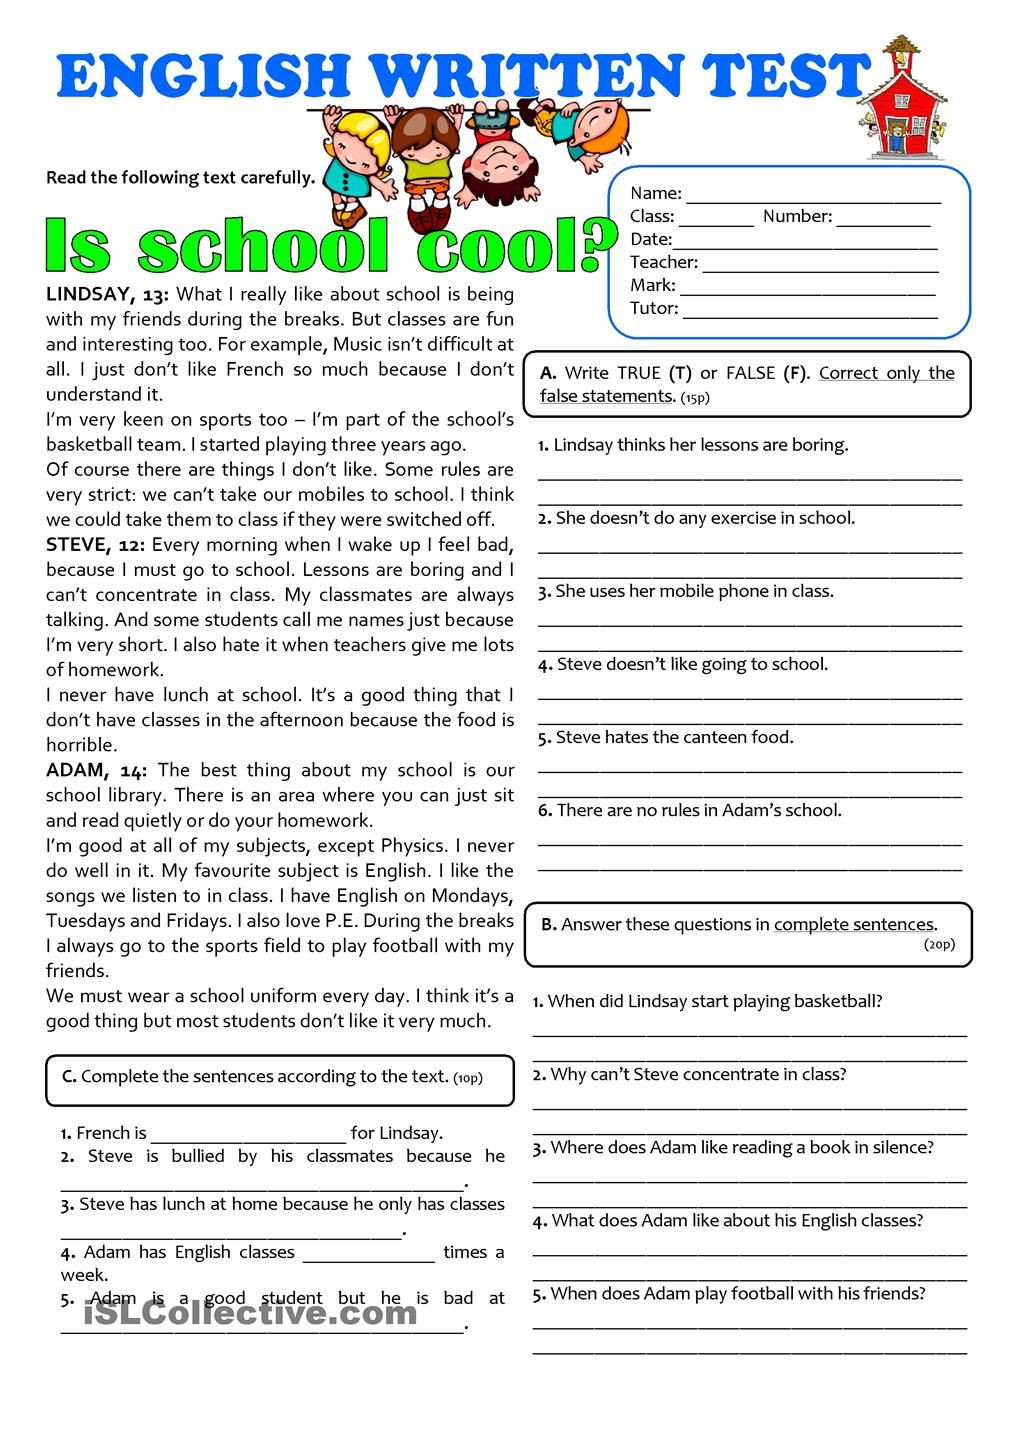 Reading Comprehension 7th Grade Worksheet is School Cool 7th Grade Test